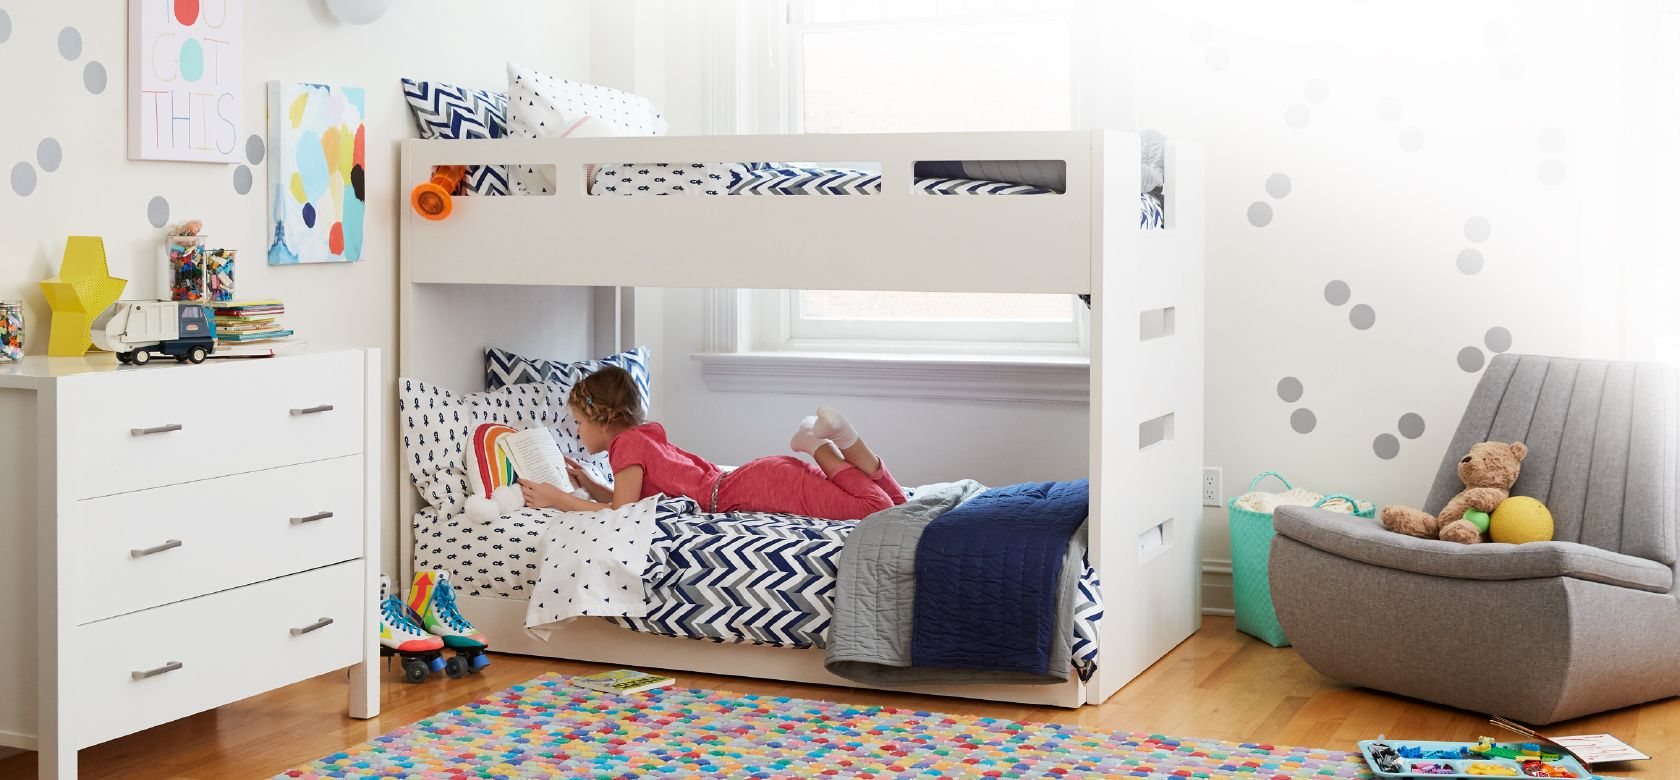 Baby bed that hooks to bed - Start To Furnish